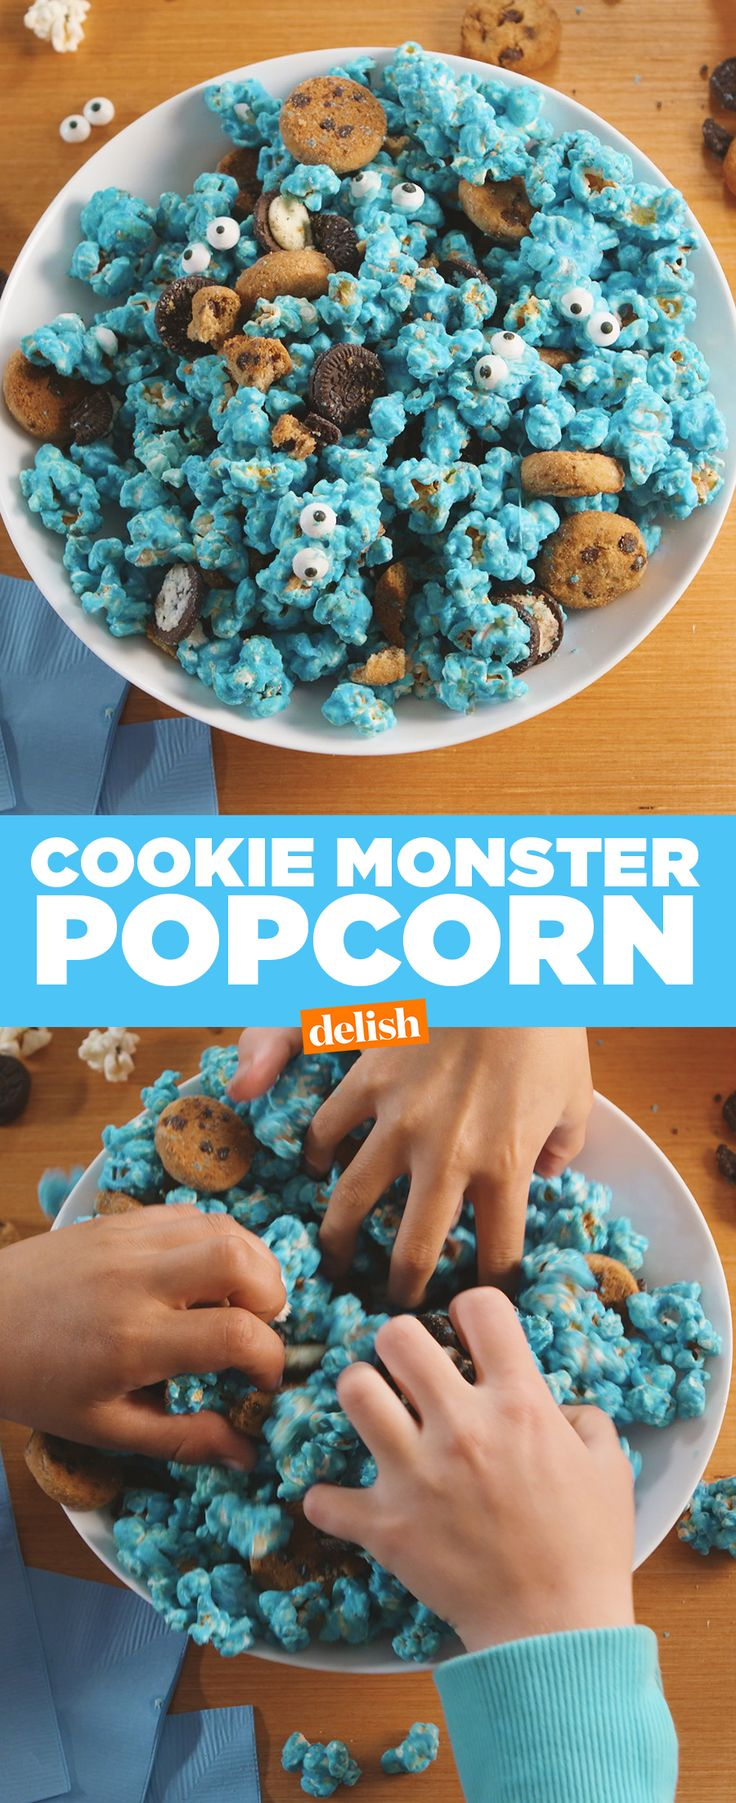 Cookie monster fans: you'll freak over how adorable this snack is. Get the recipe at Delish.com.